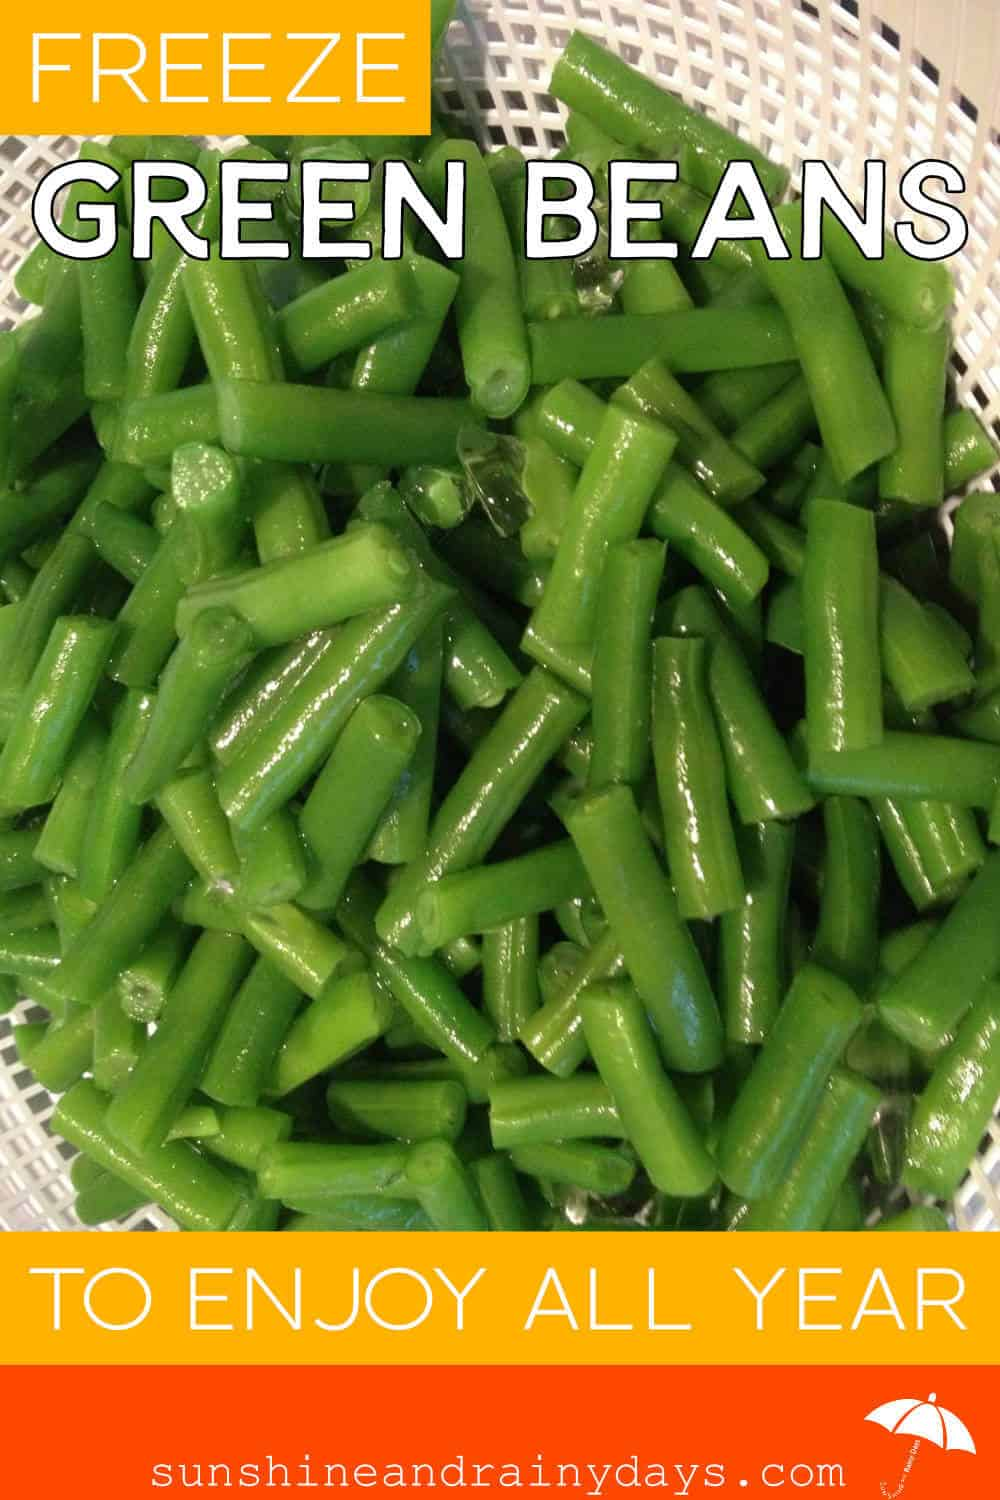 Freeze Green Beans To Enjoy All Year